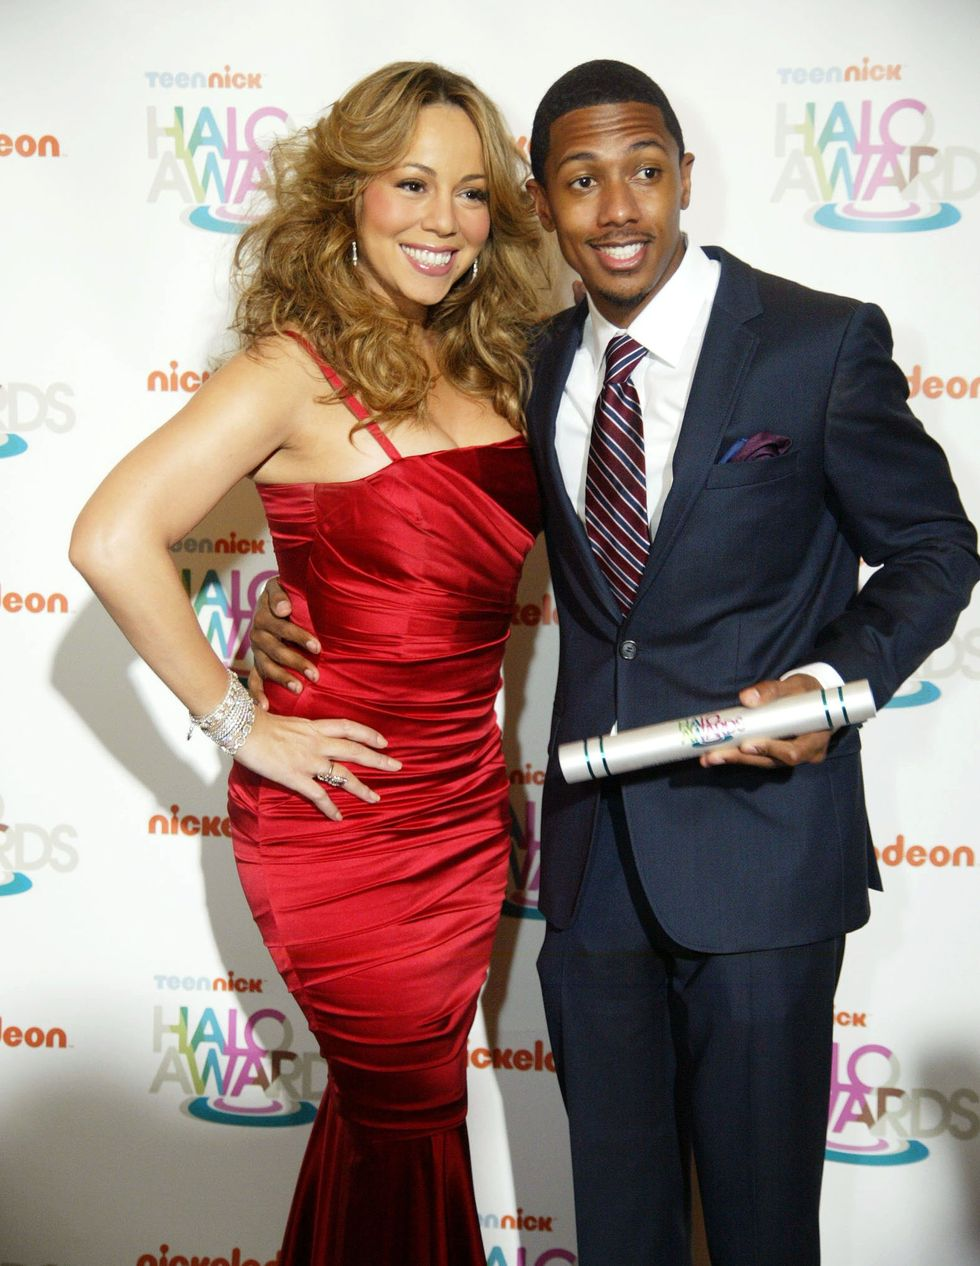 mariah-carey-teennick-halo-awards-screening-in-new-york-01